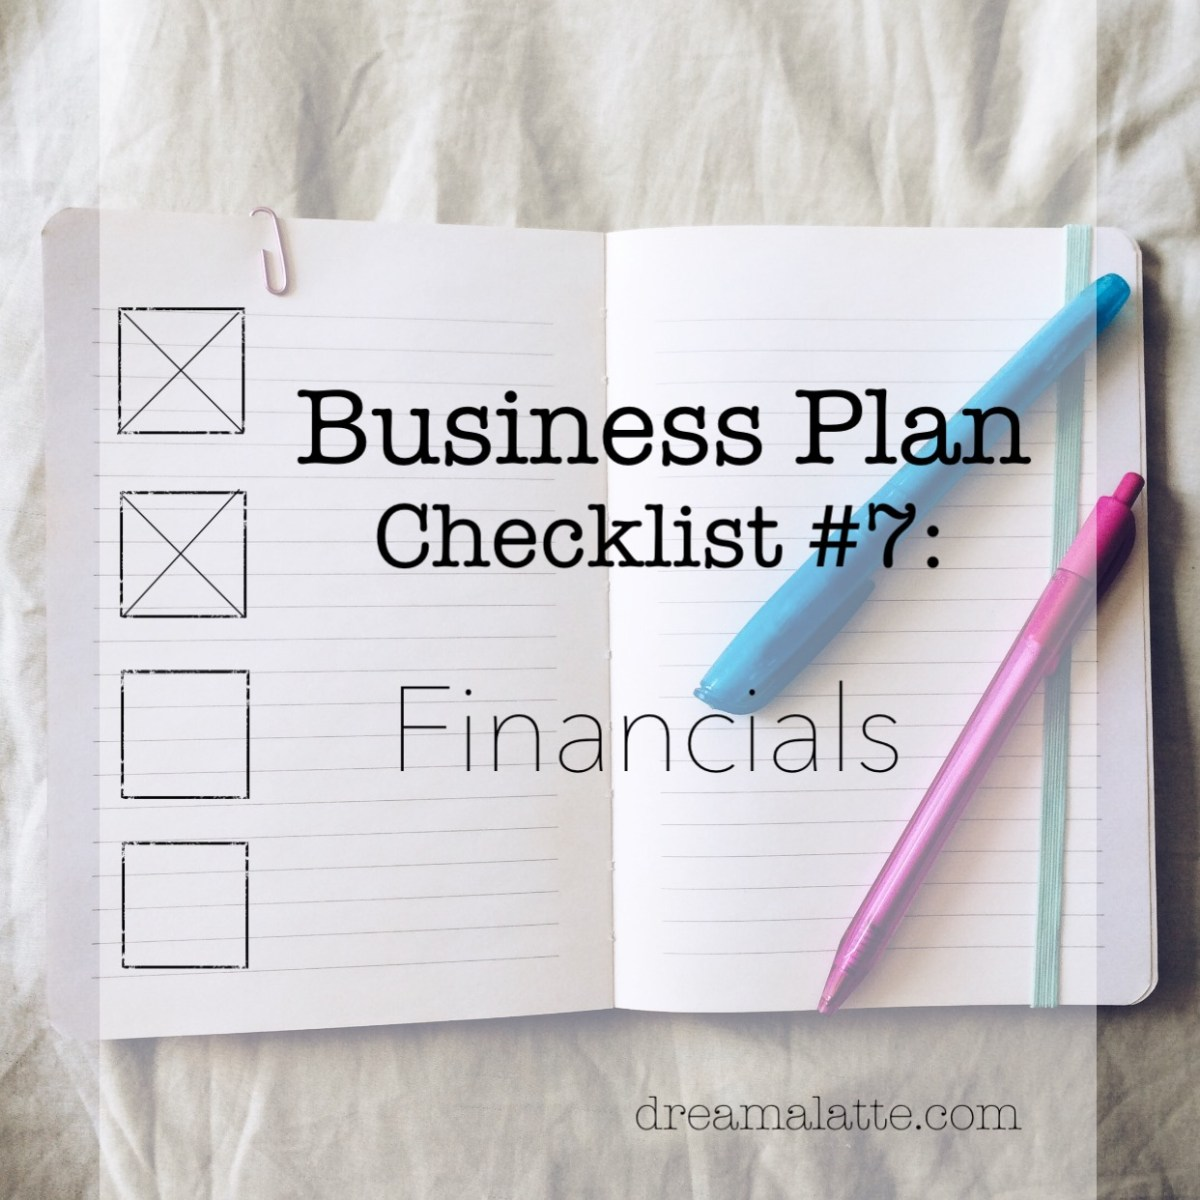 Coffee Shop Business Plan: Financials